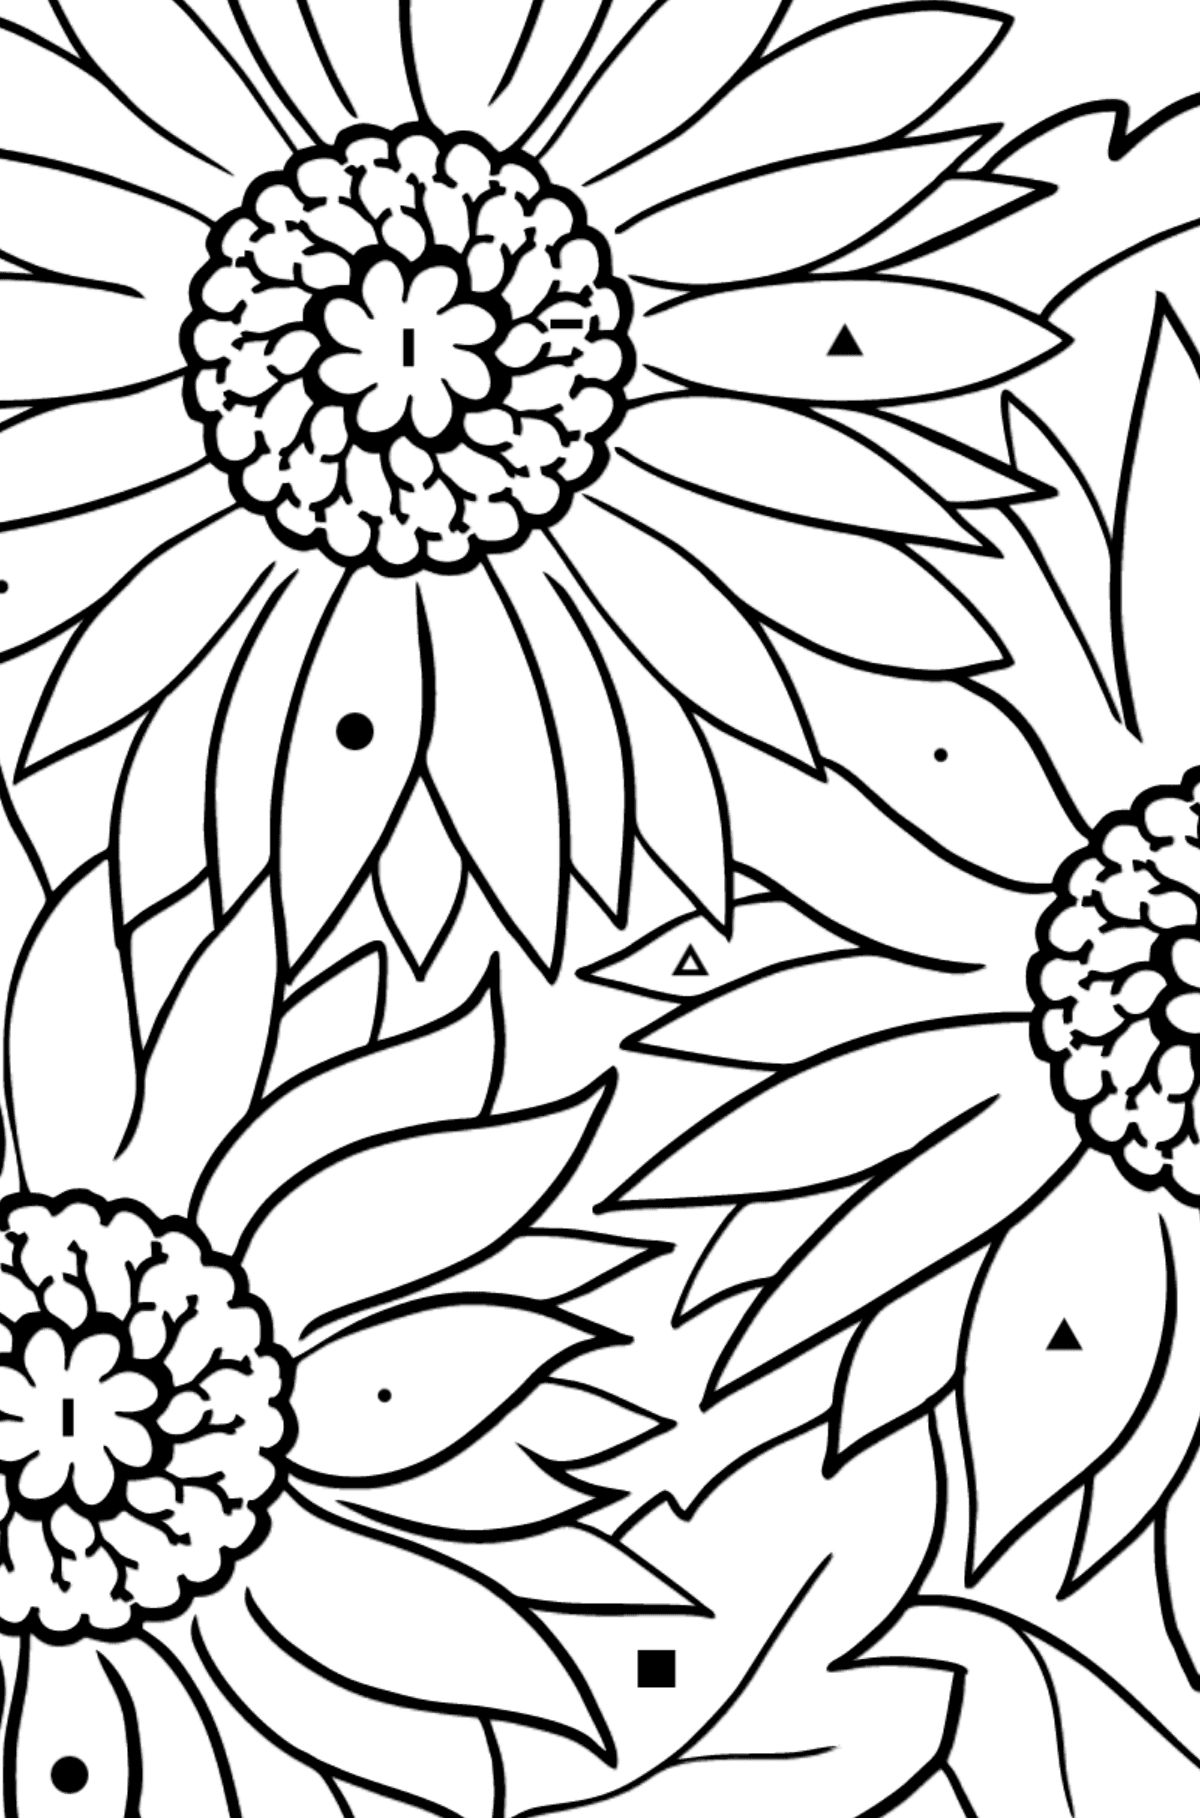 Coloring Page - Yellow Gerbera - Coloring by Symbols for Kids